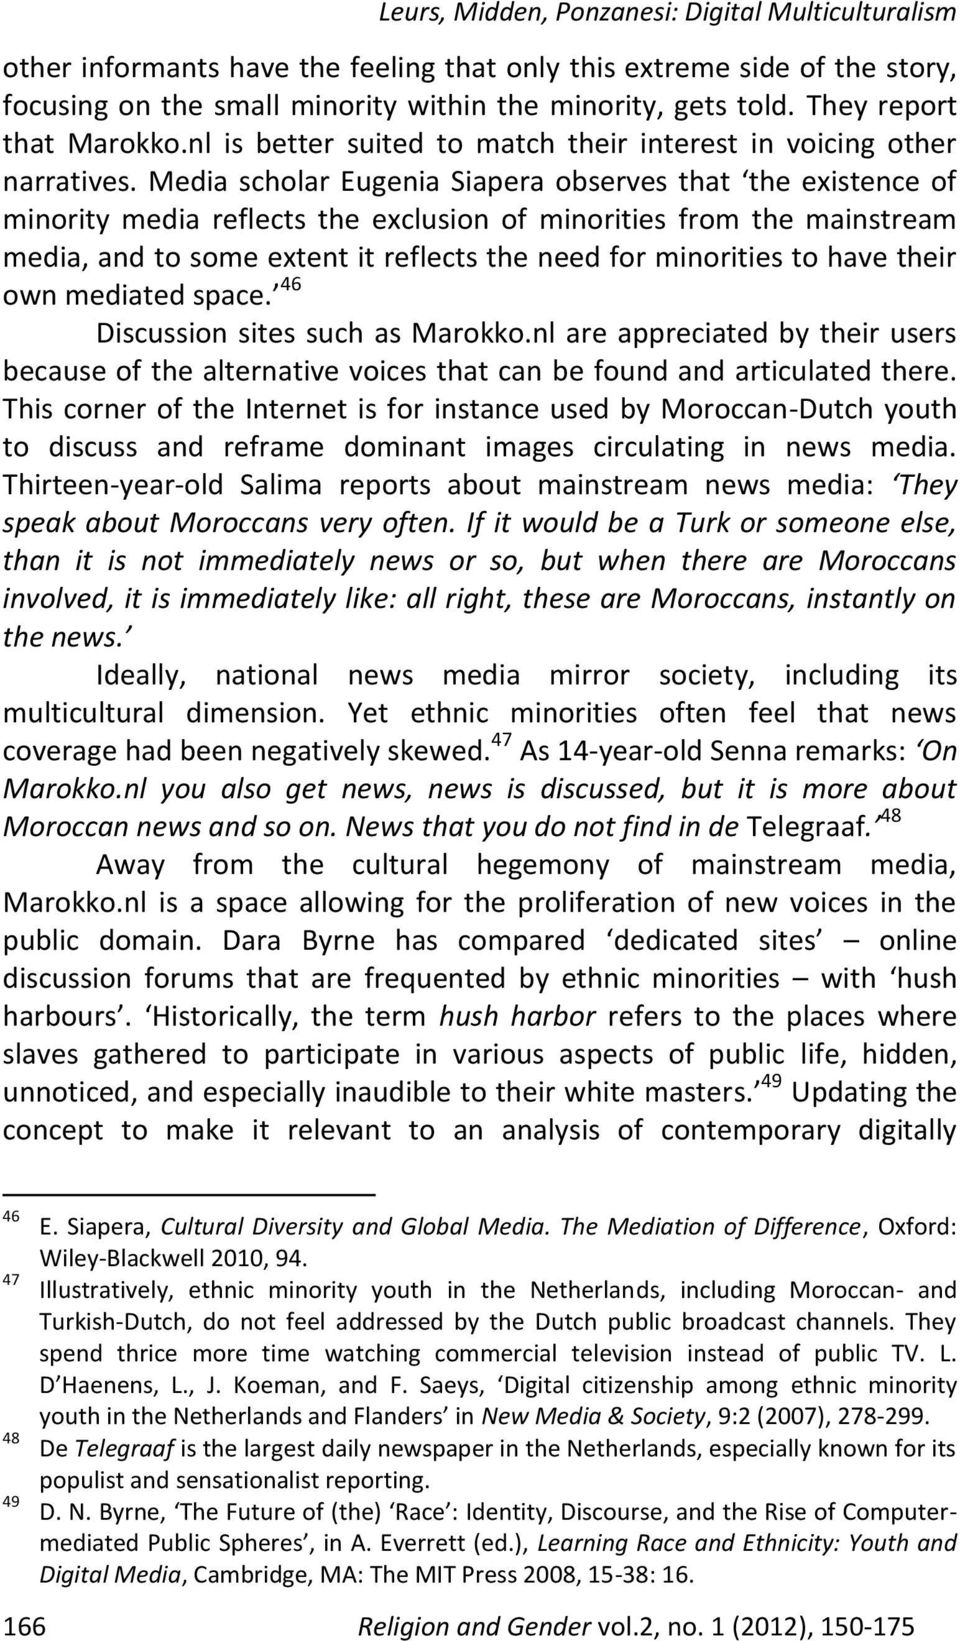 Media scholar Eugenia Siapera observes that the existence of minority media reflects the exclusion of minorities from the mainstream media, and to some extent it reflects the need for minorities to